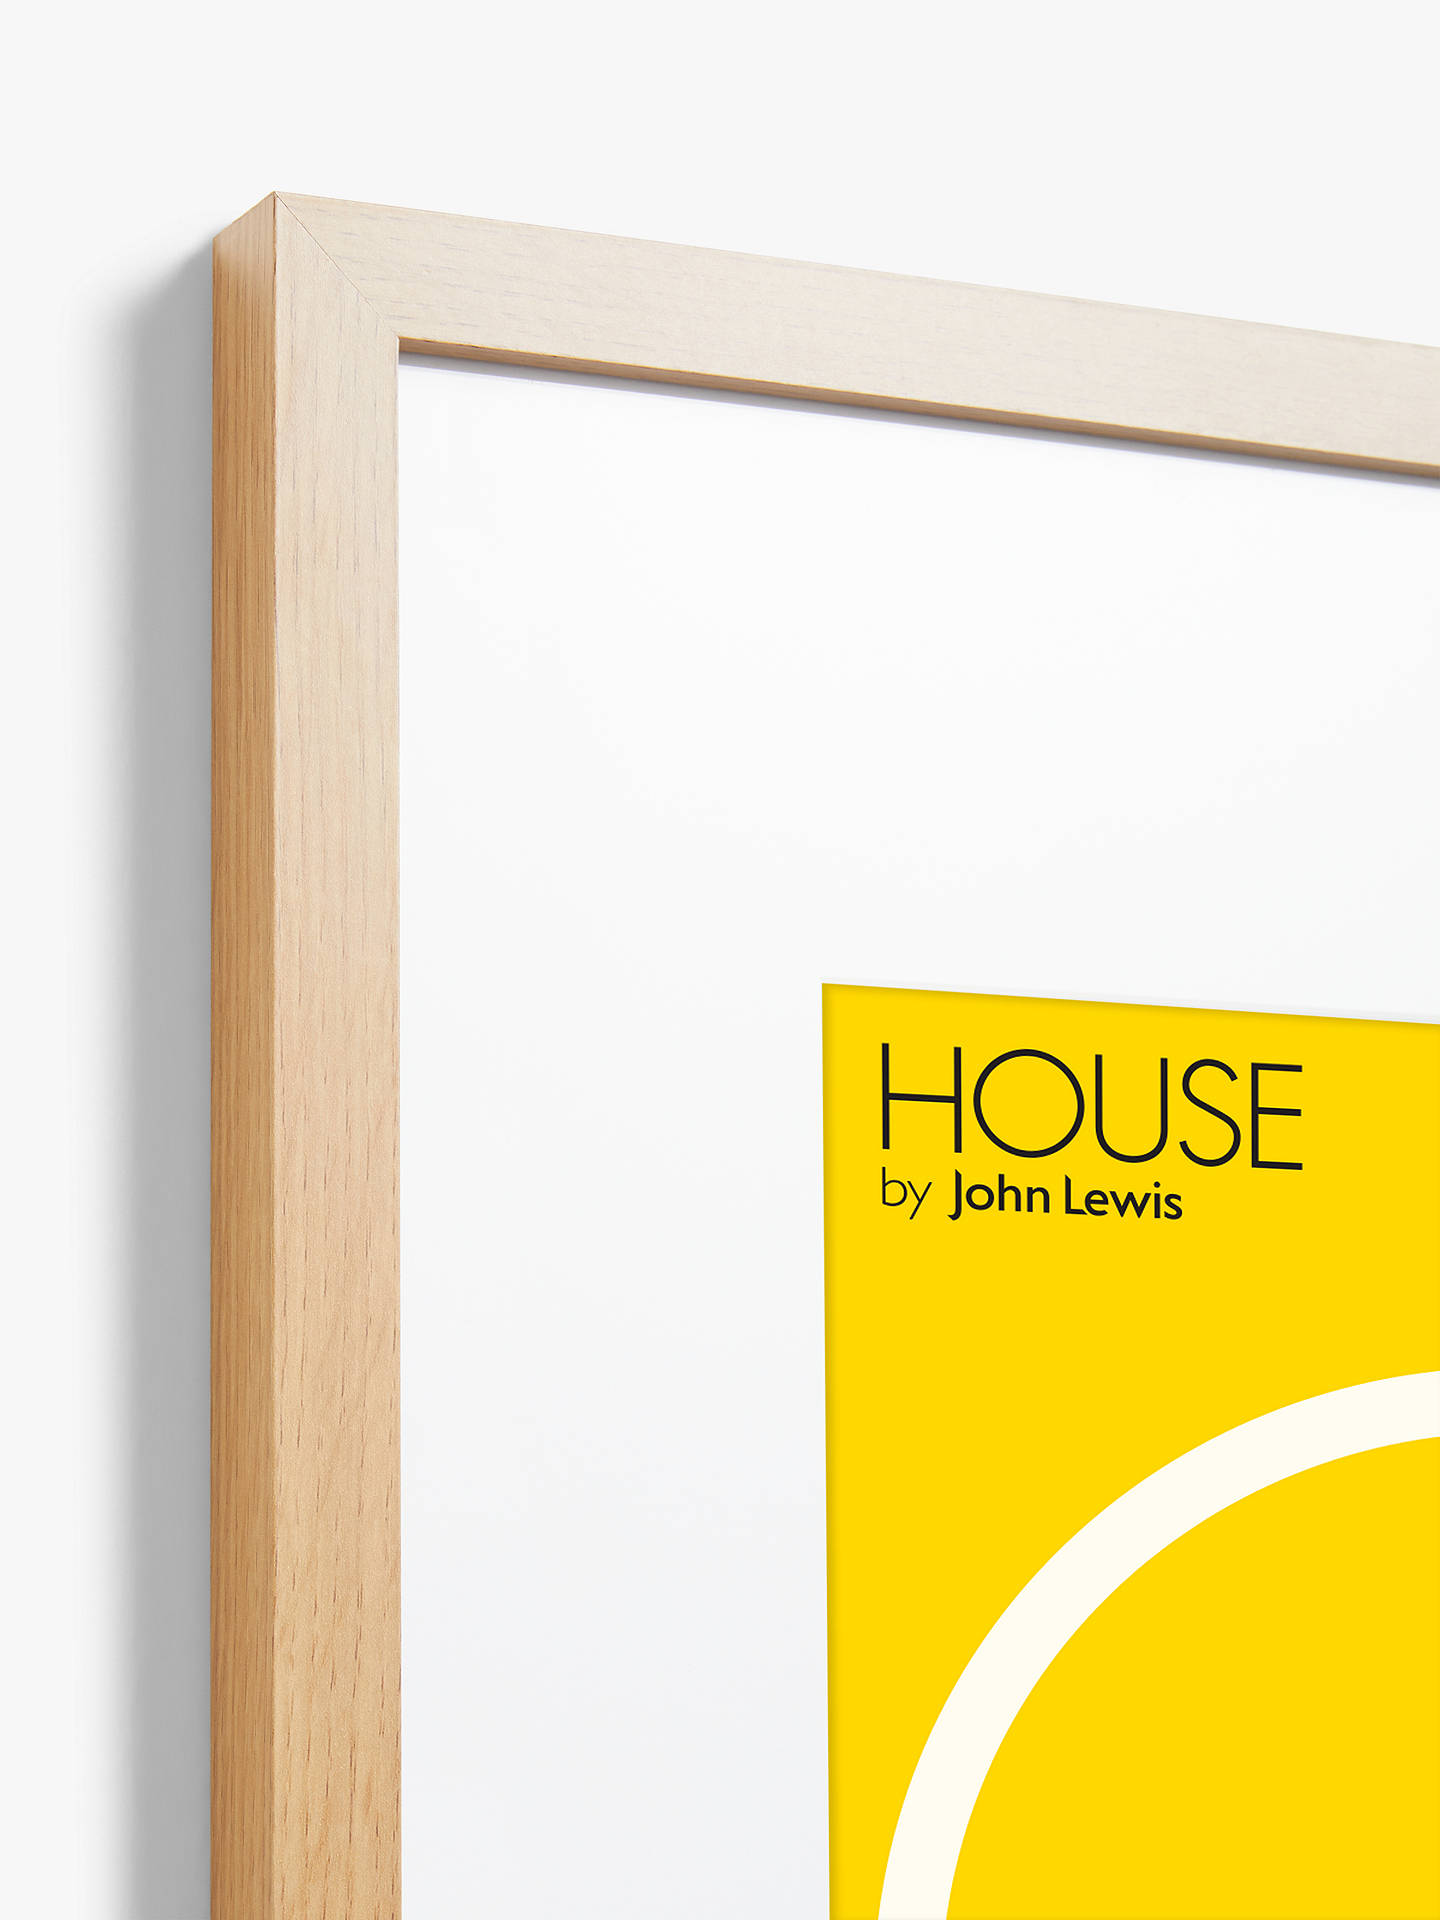 Buy House by John Lewis Poster Frame & Mount, Wood Effect, A1 (60 x 85cm) Online at johnlewis.com